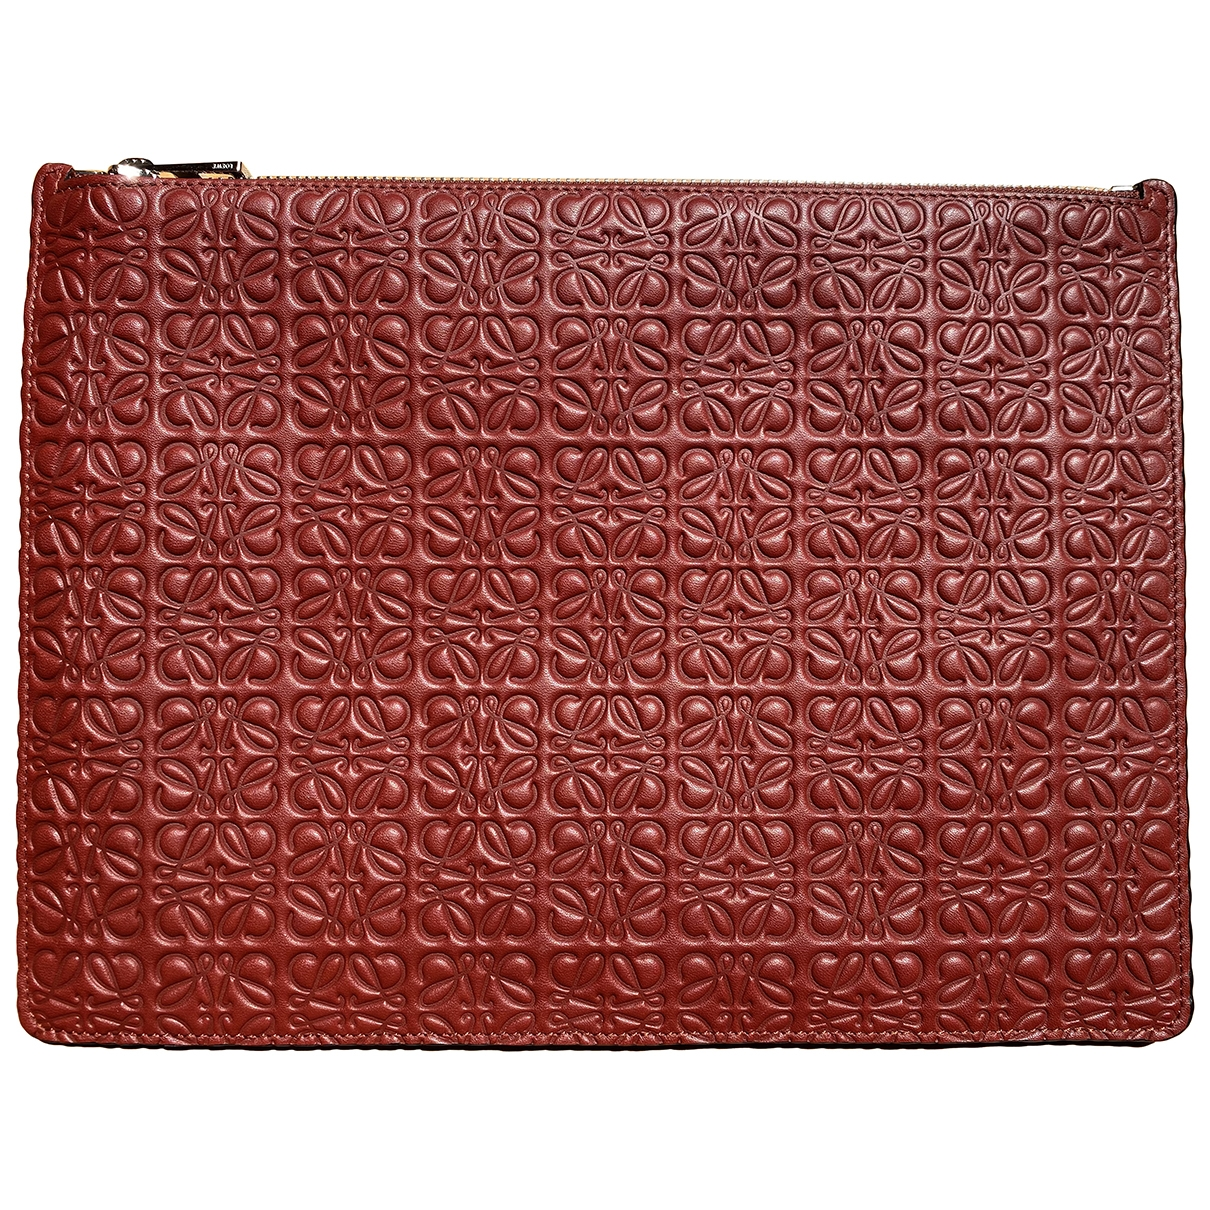 Loewe T Pouch Burgundy Leather Clutch bag for Women \N